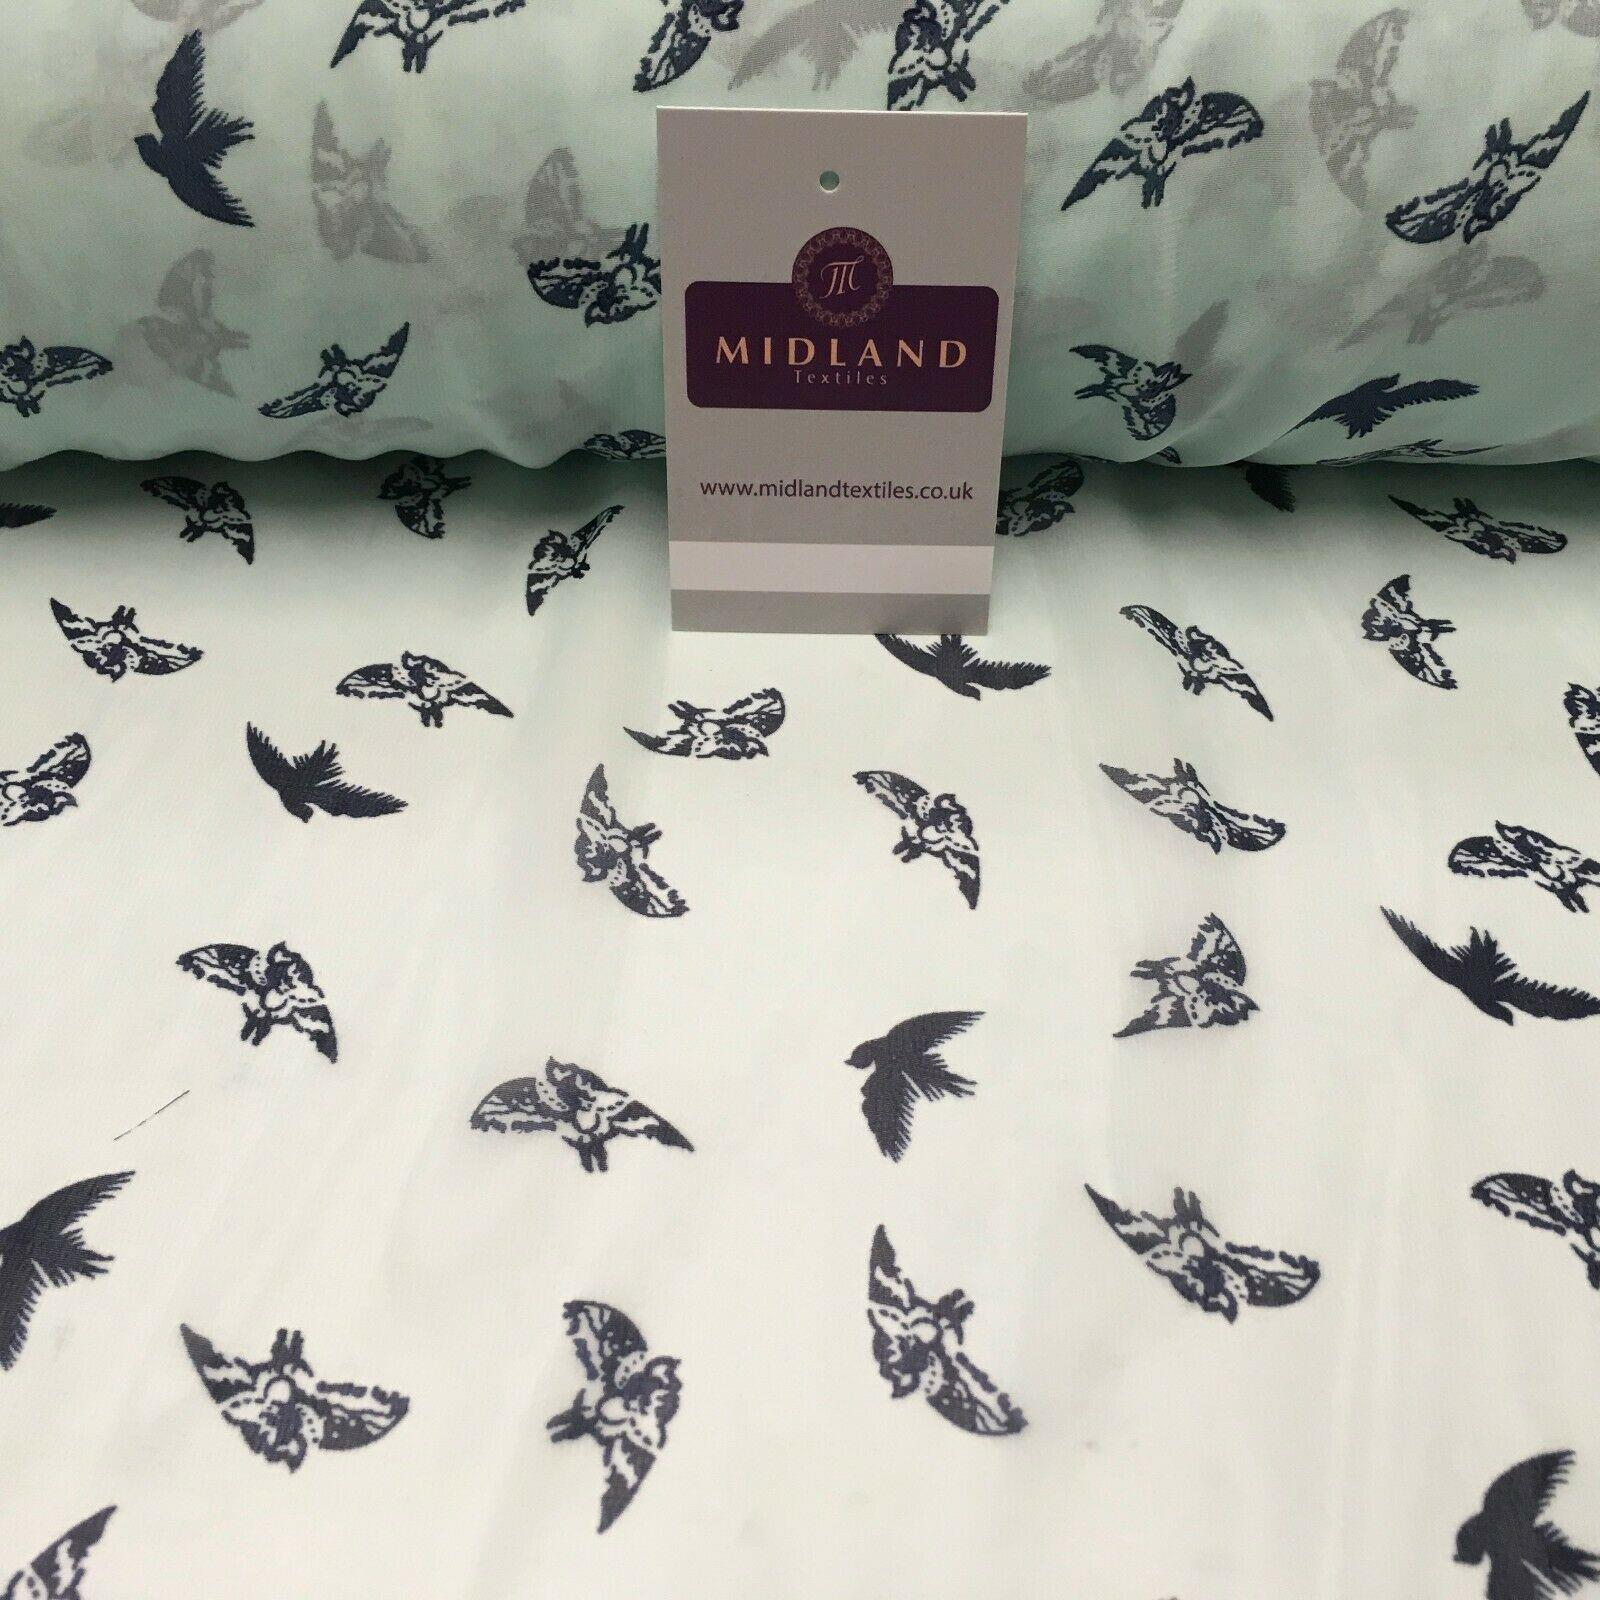 Mint Bird silhouette Printed Crepe chiffon Dress Fabric 150 cm MK1190-20